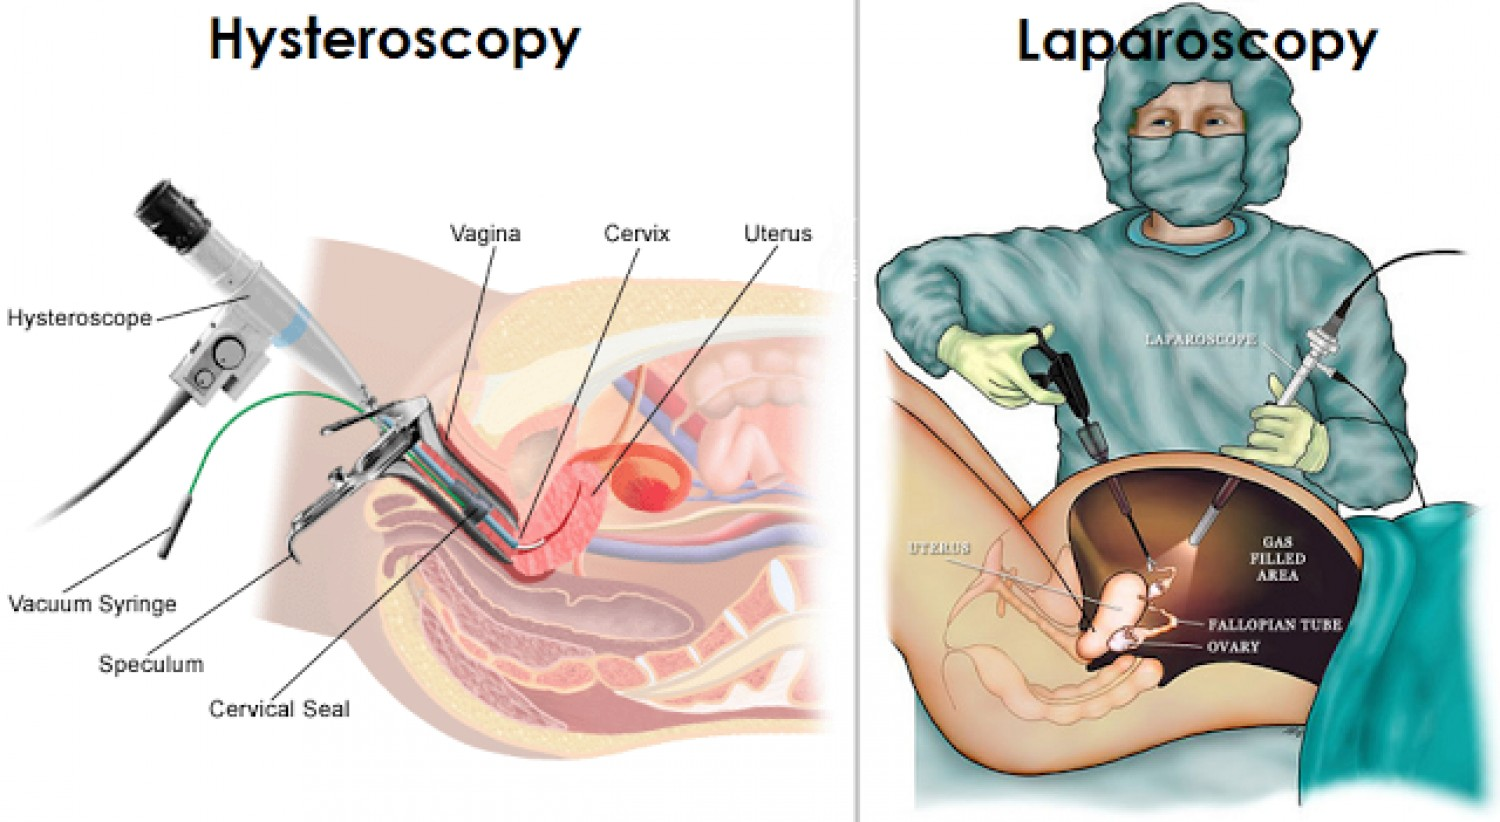 Laparoscopy Recovery Time Amp Laparoscopy Side Effects